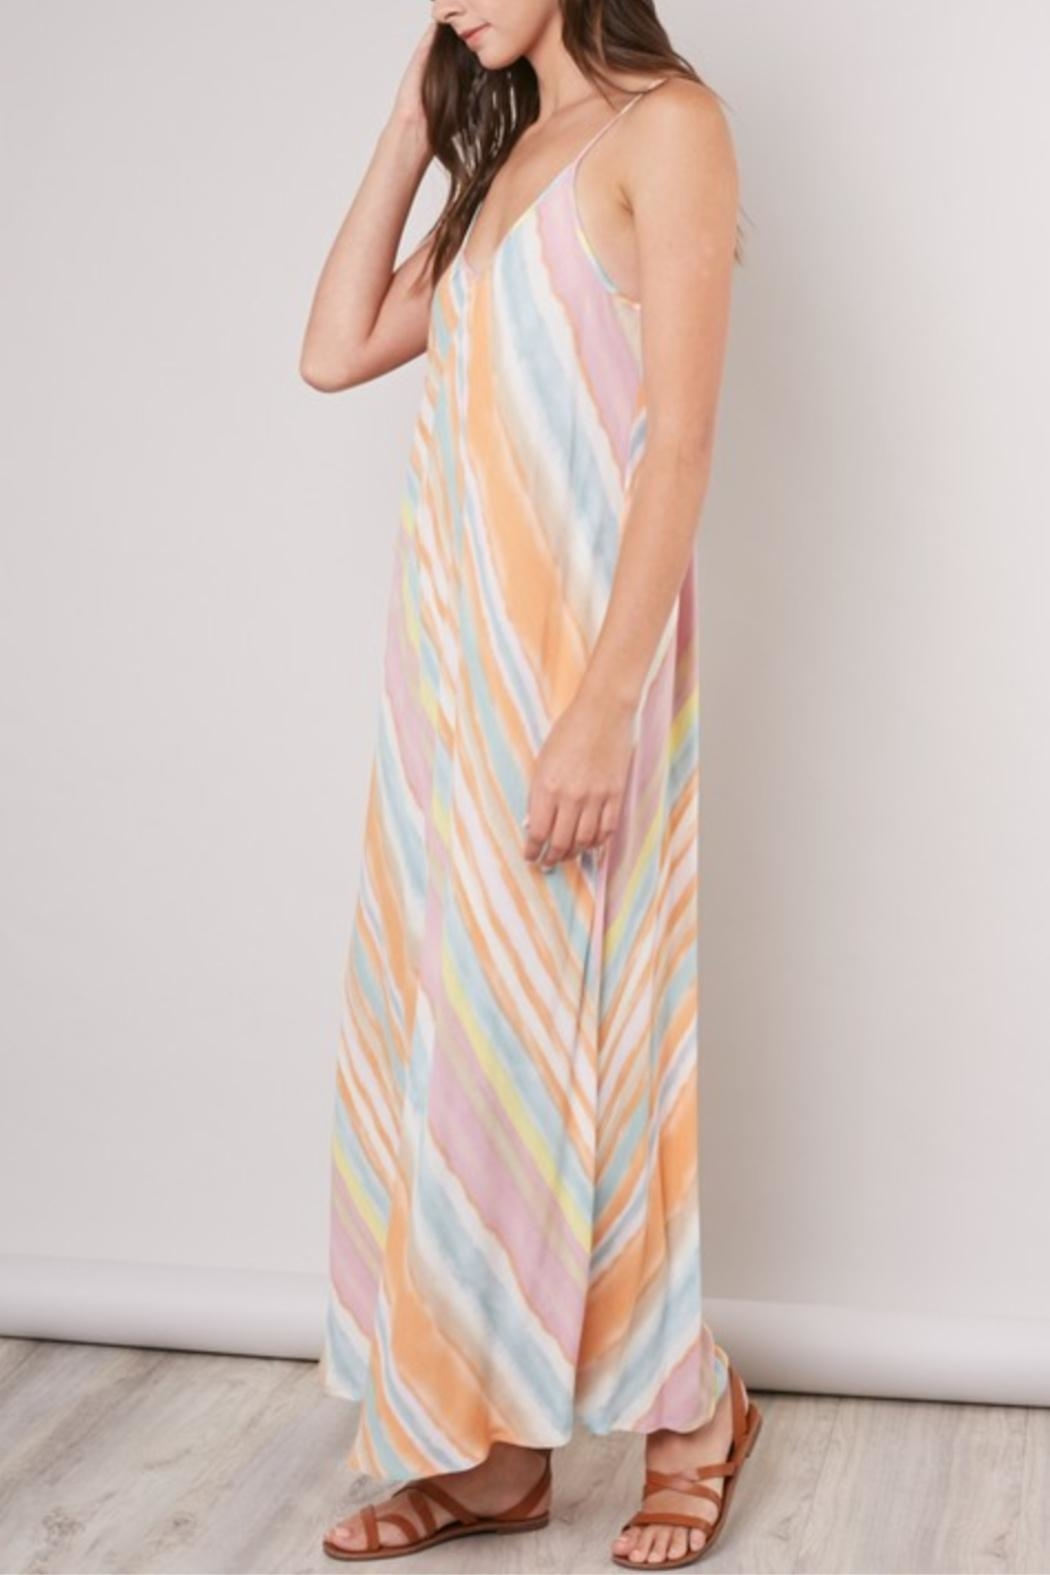 Mustard Seed Striped Tie-Dye Dress - Front Cropped Image